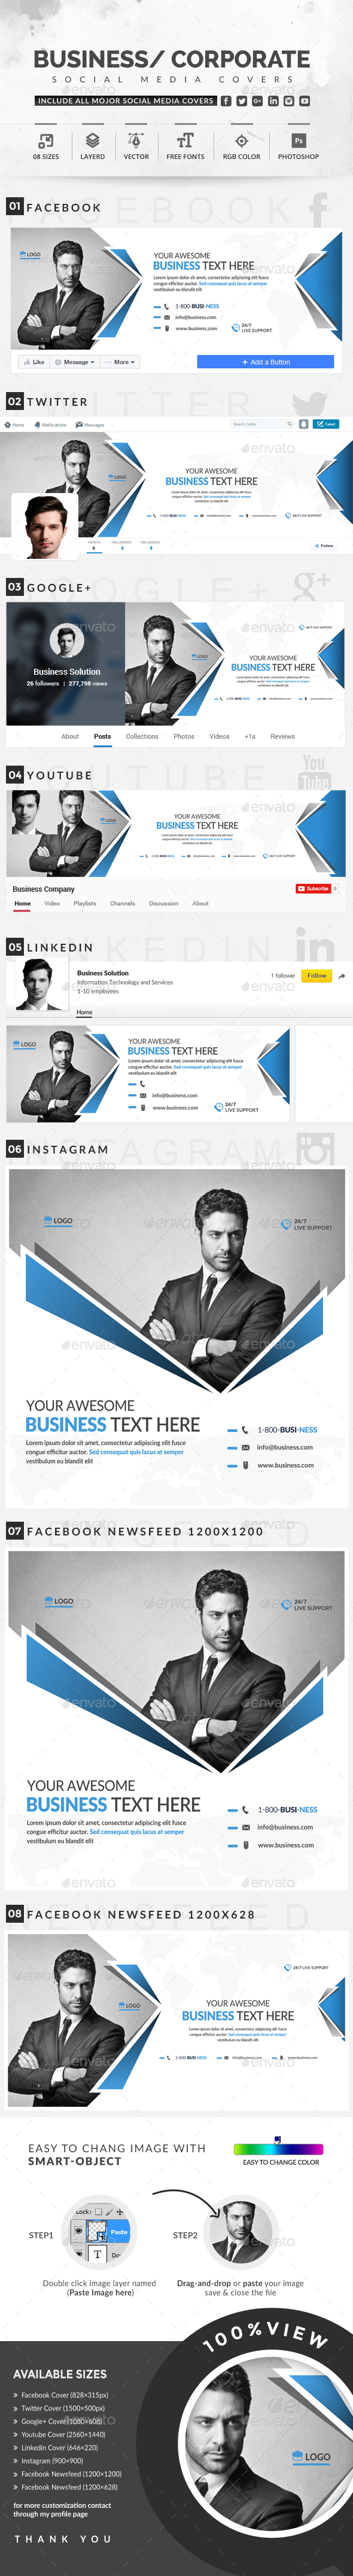 Corporate Social Media Covers - Social Media Web Elements